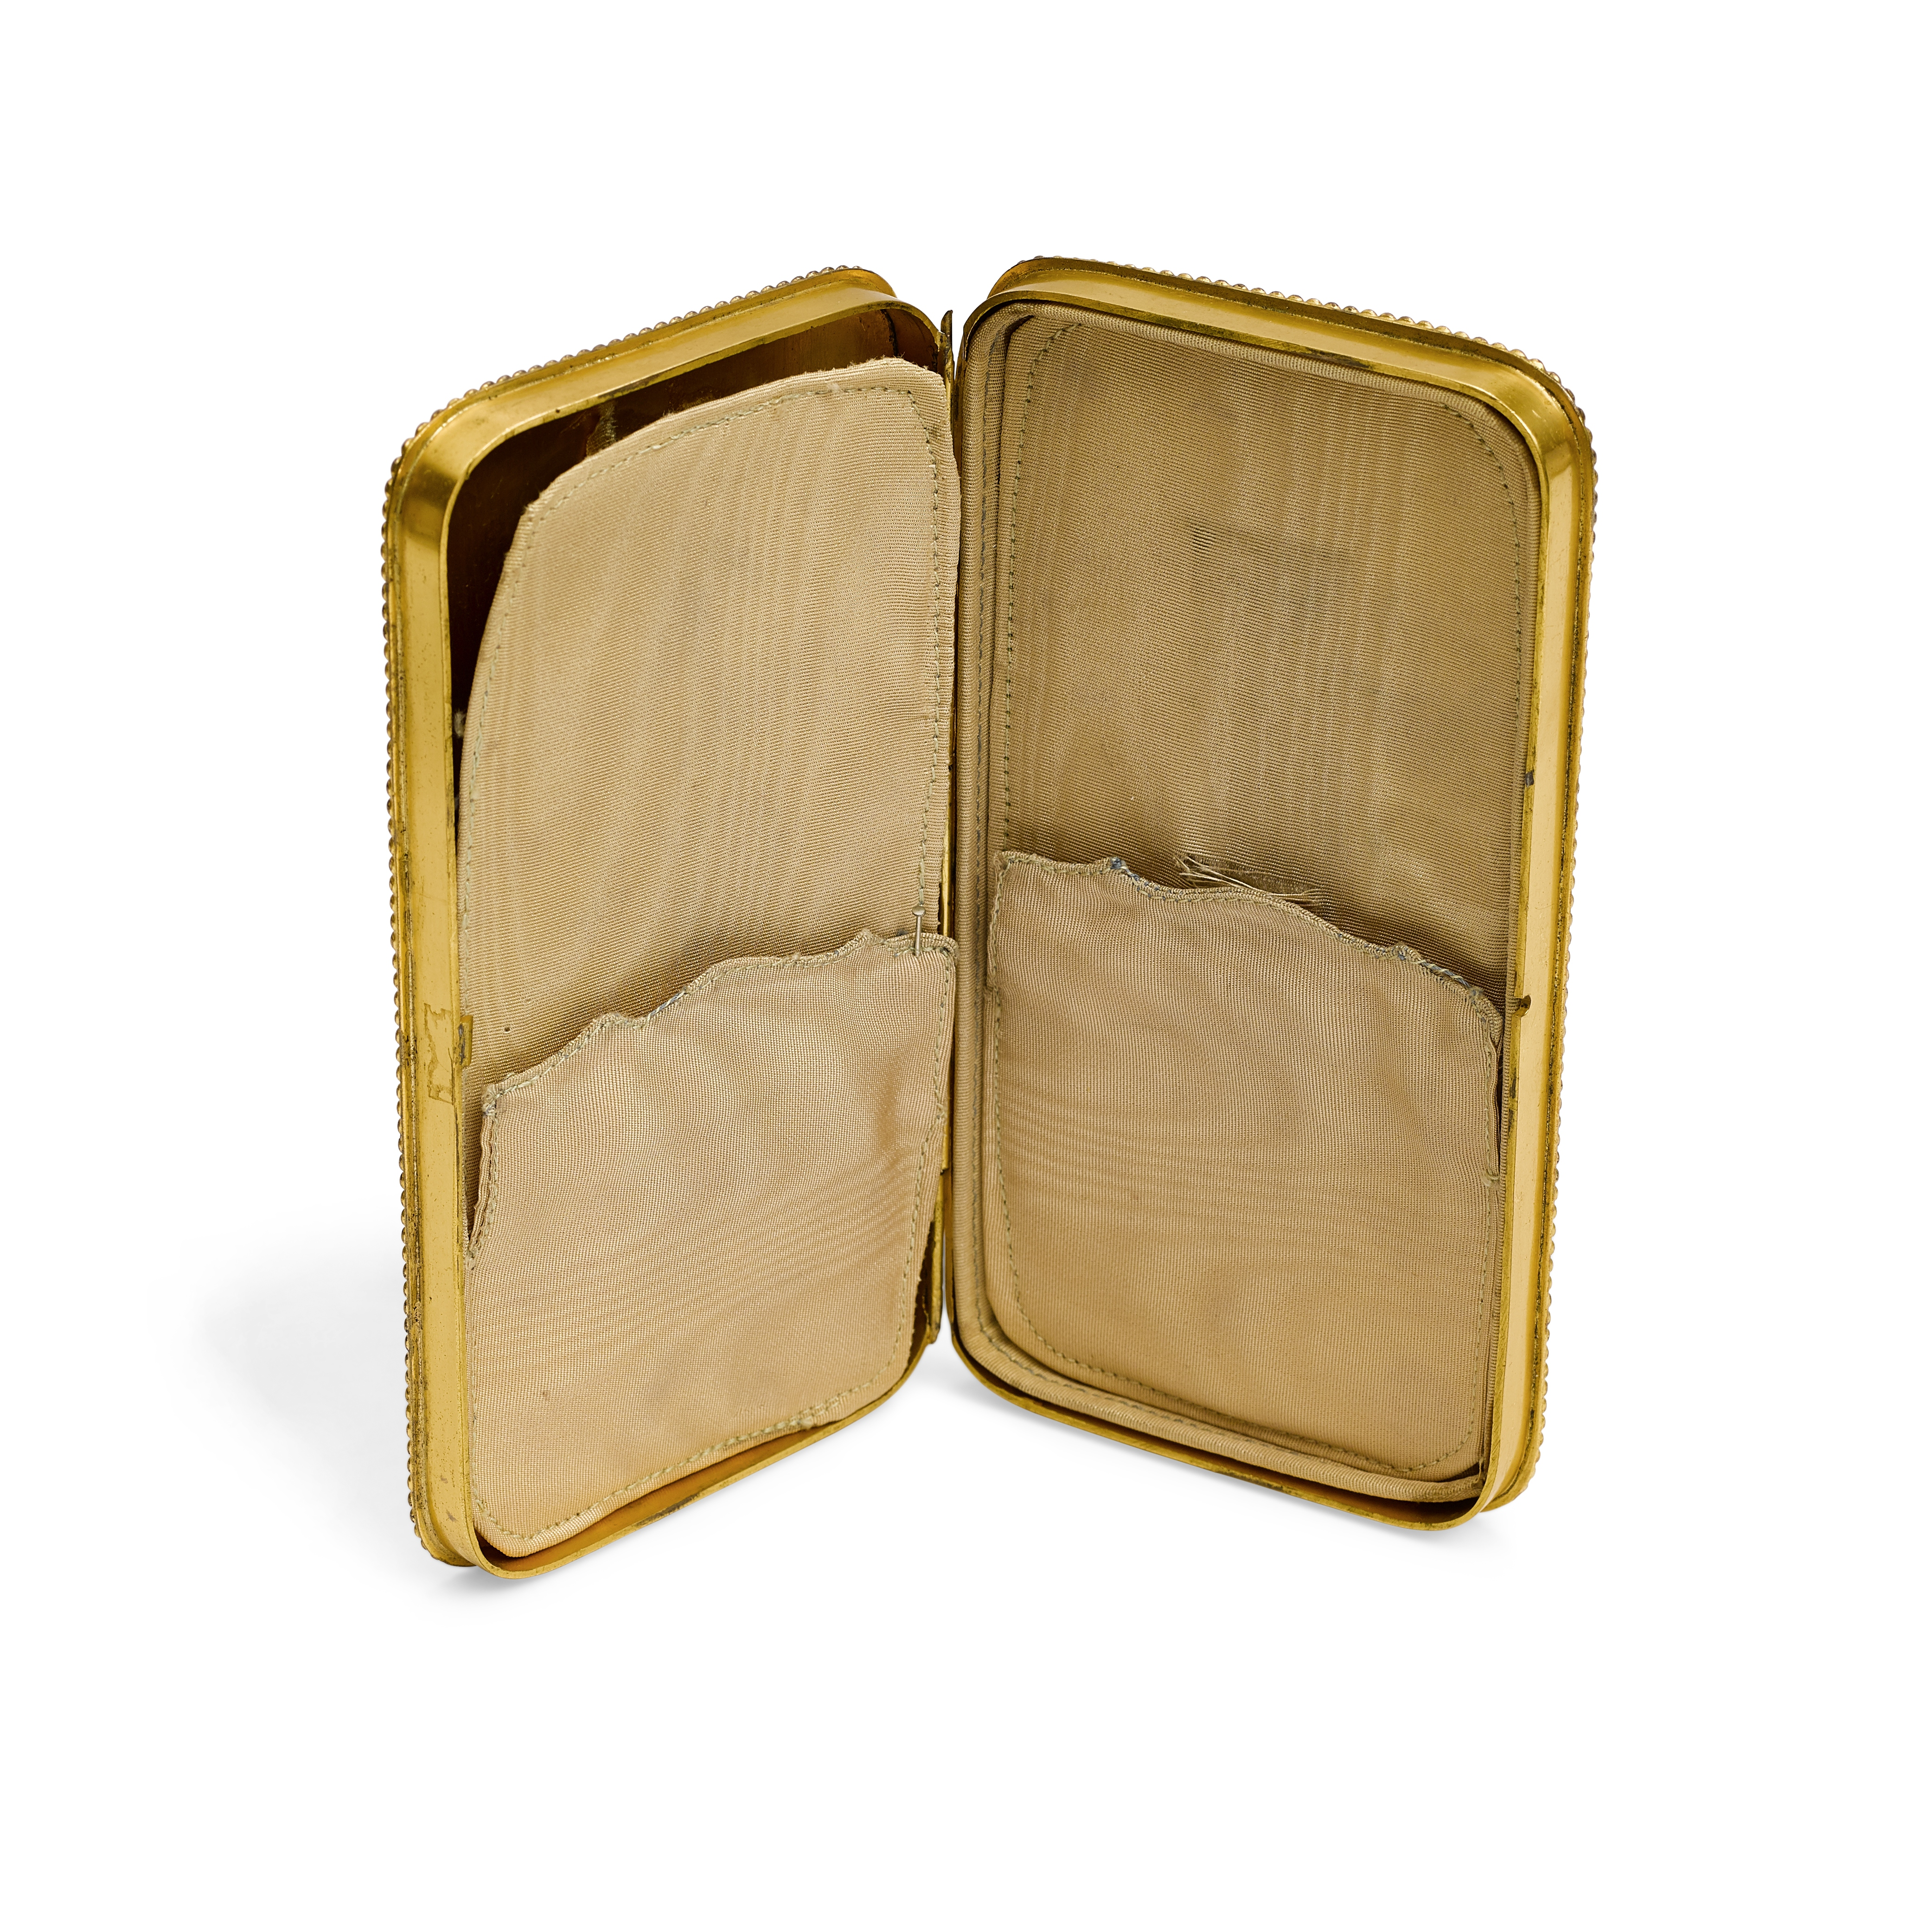 Lot 1050 - A Clark Gable cigar case from Gone With the Wind